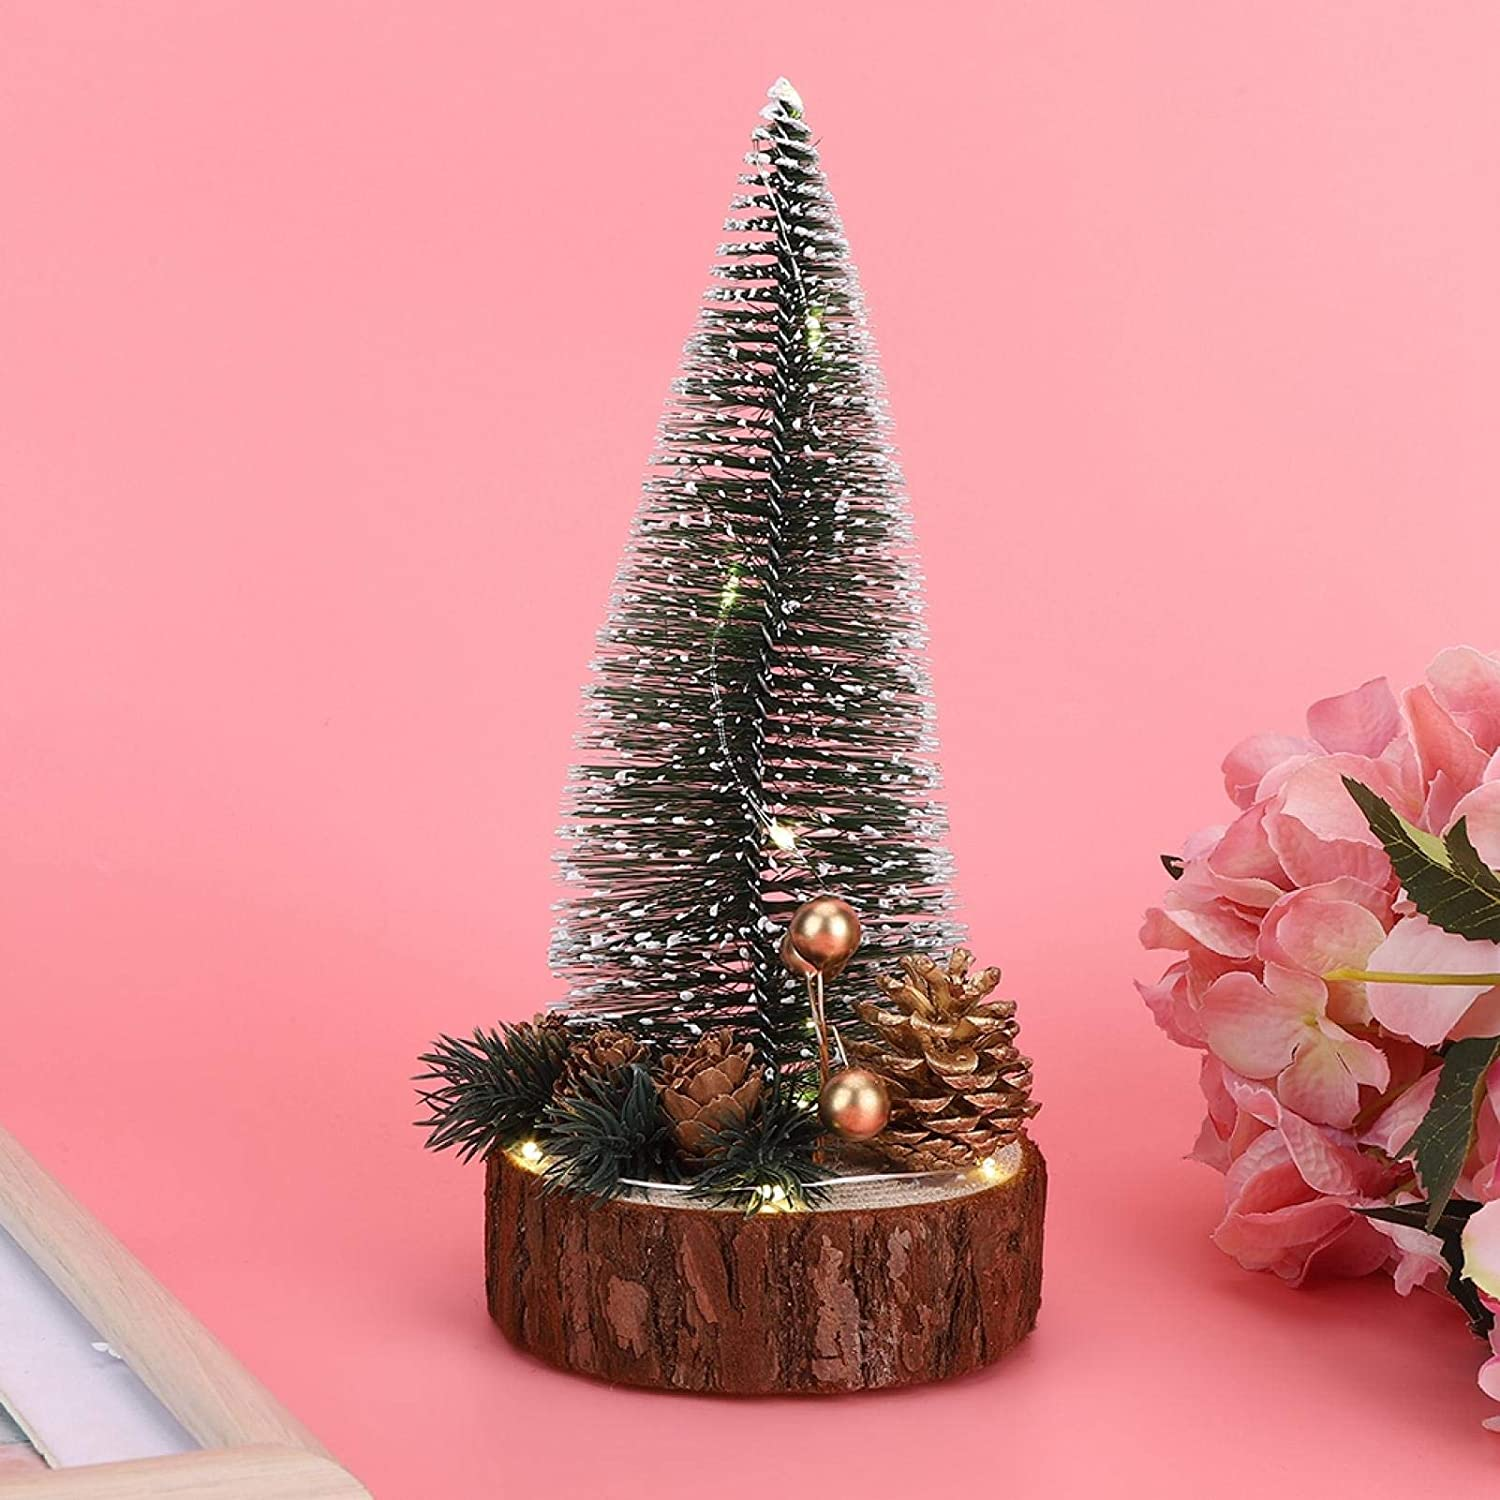 Online limited product Sale Special Price Gaeirt Mini Christmas Tree Brighten Desktop C Up